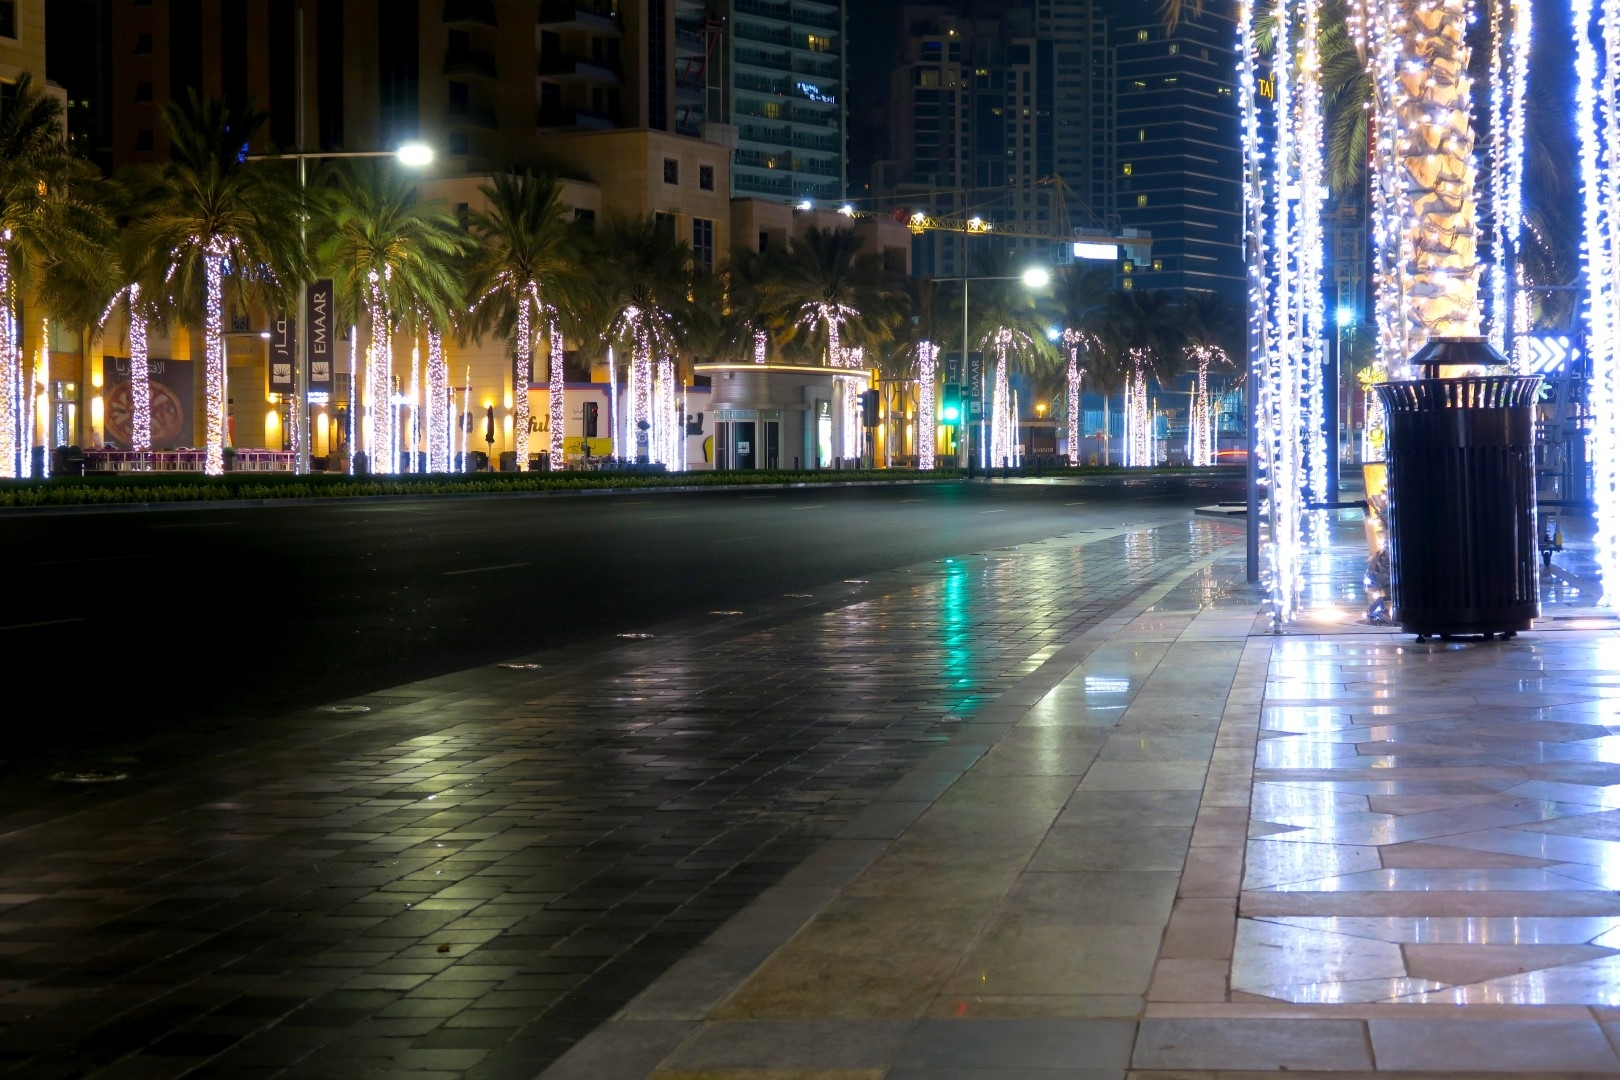 Streets of Dubai City